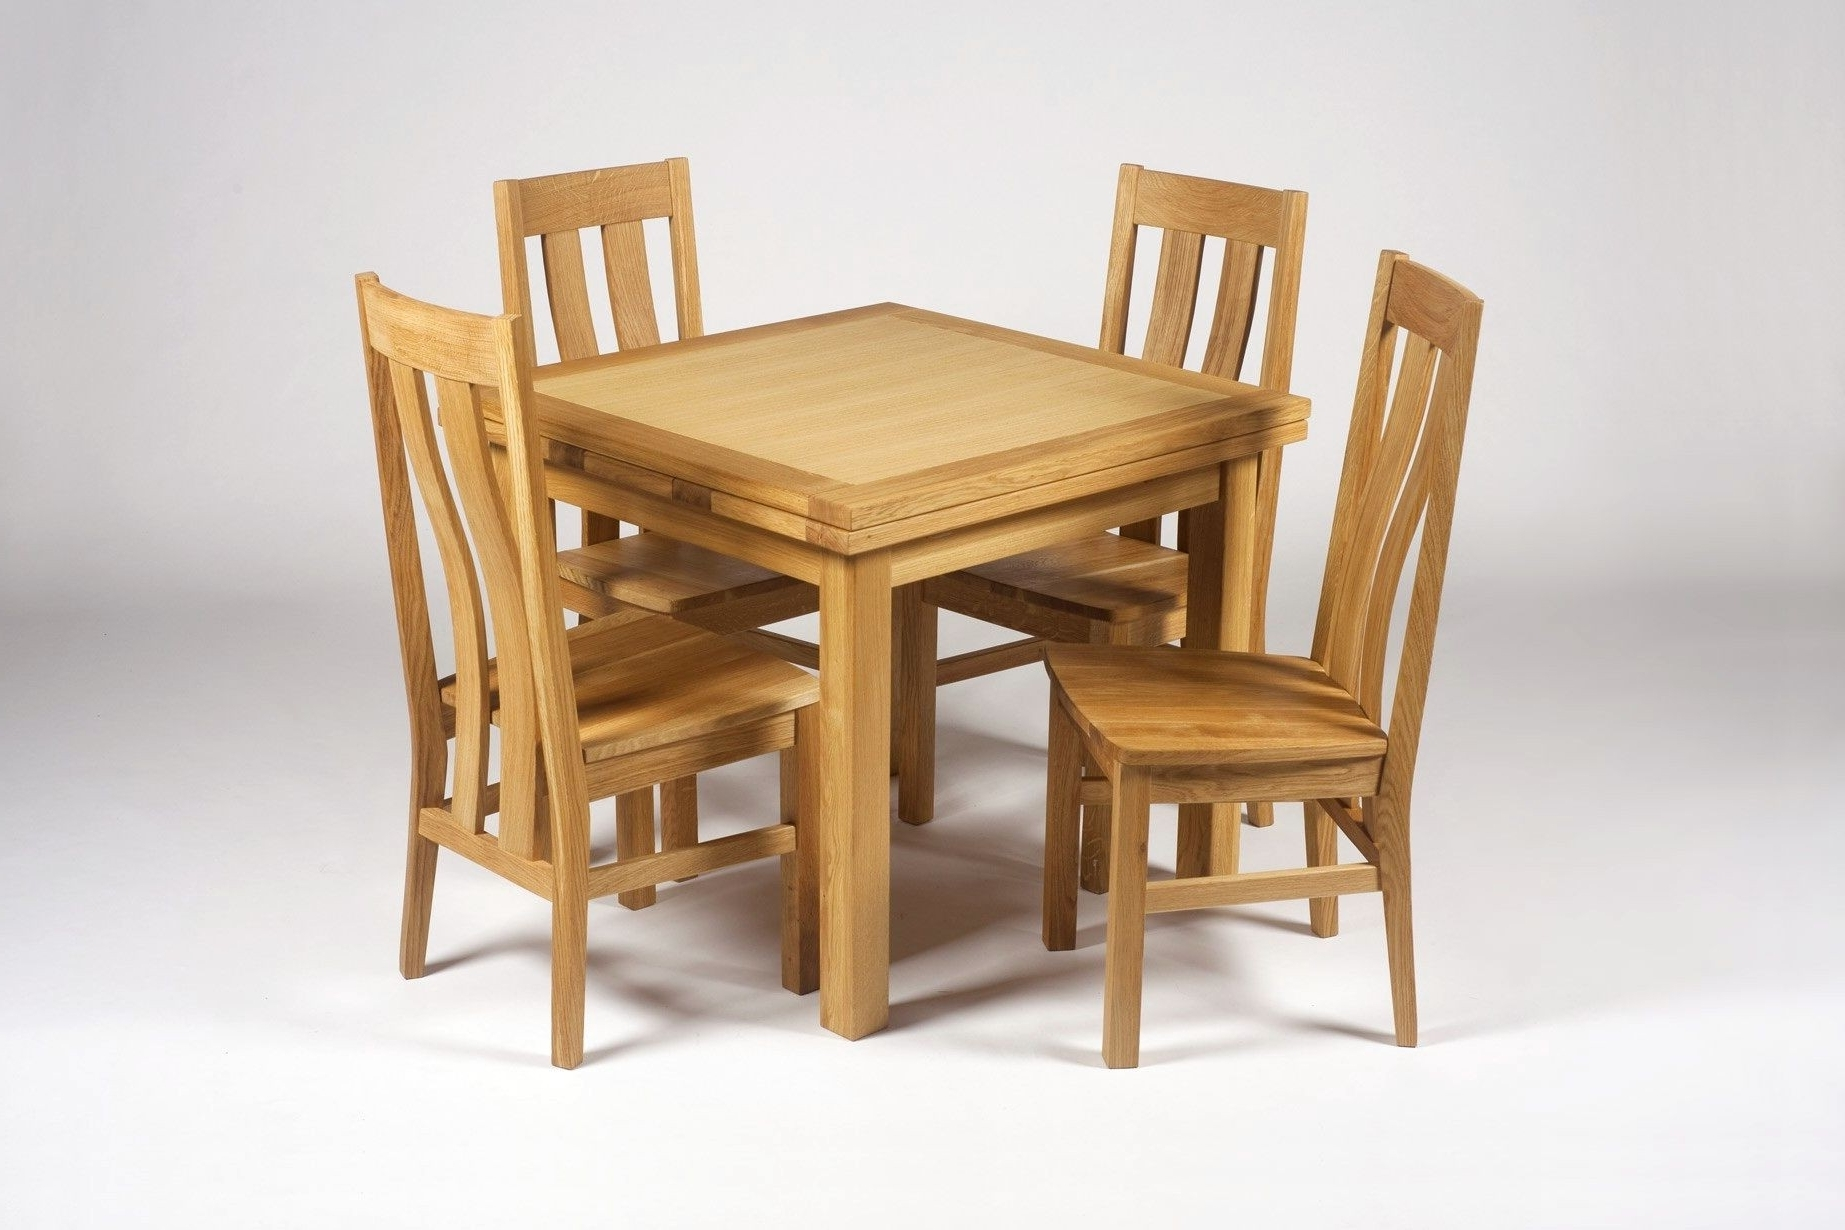 Small Extending Dining Tables And 4 Chairs Throughout 2017 Small Oak Dining Table And 4 Chairs Best Of Richmond Small Extending (View 21 of 25)